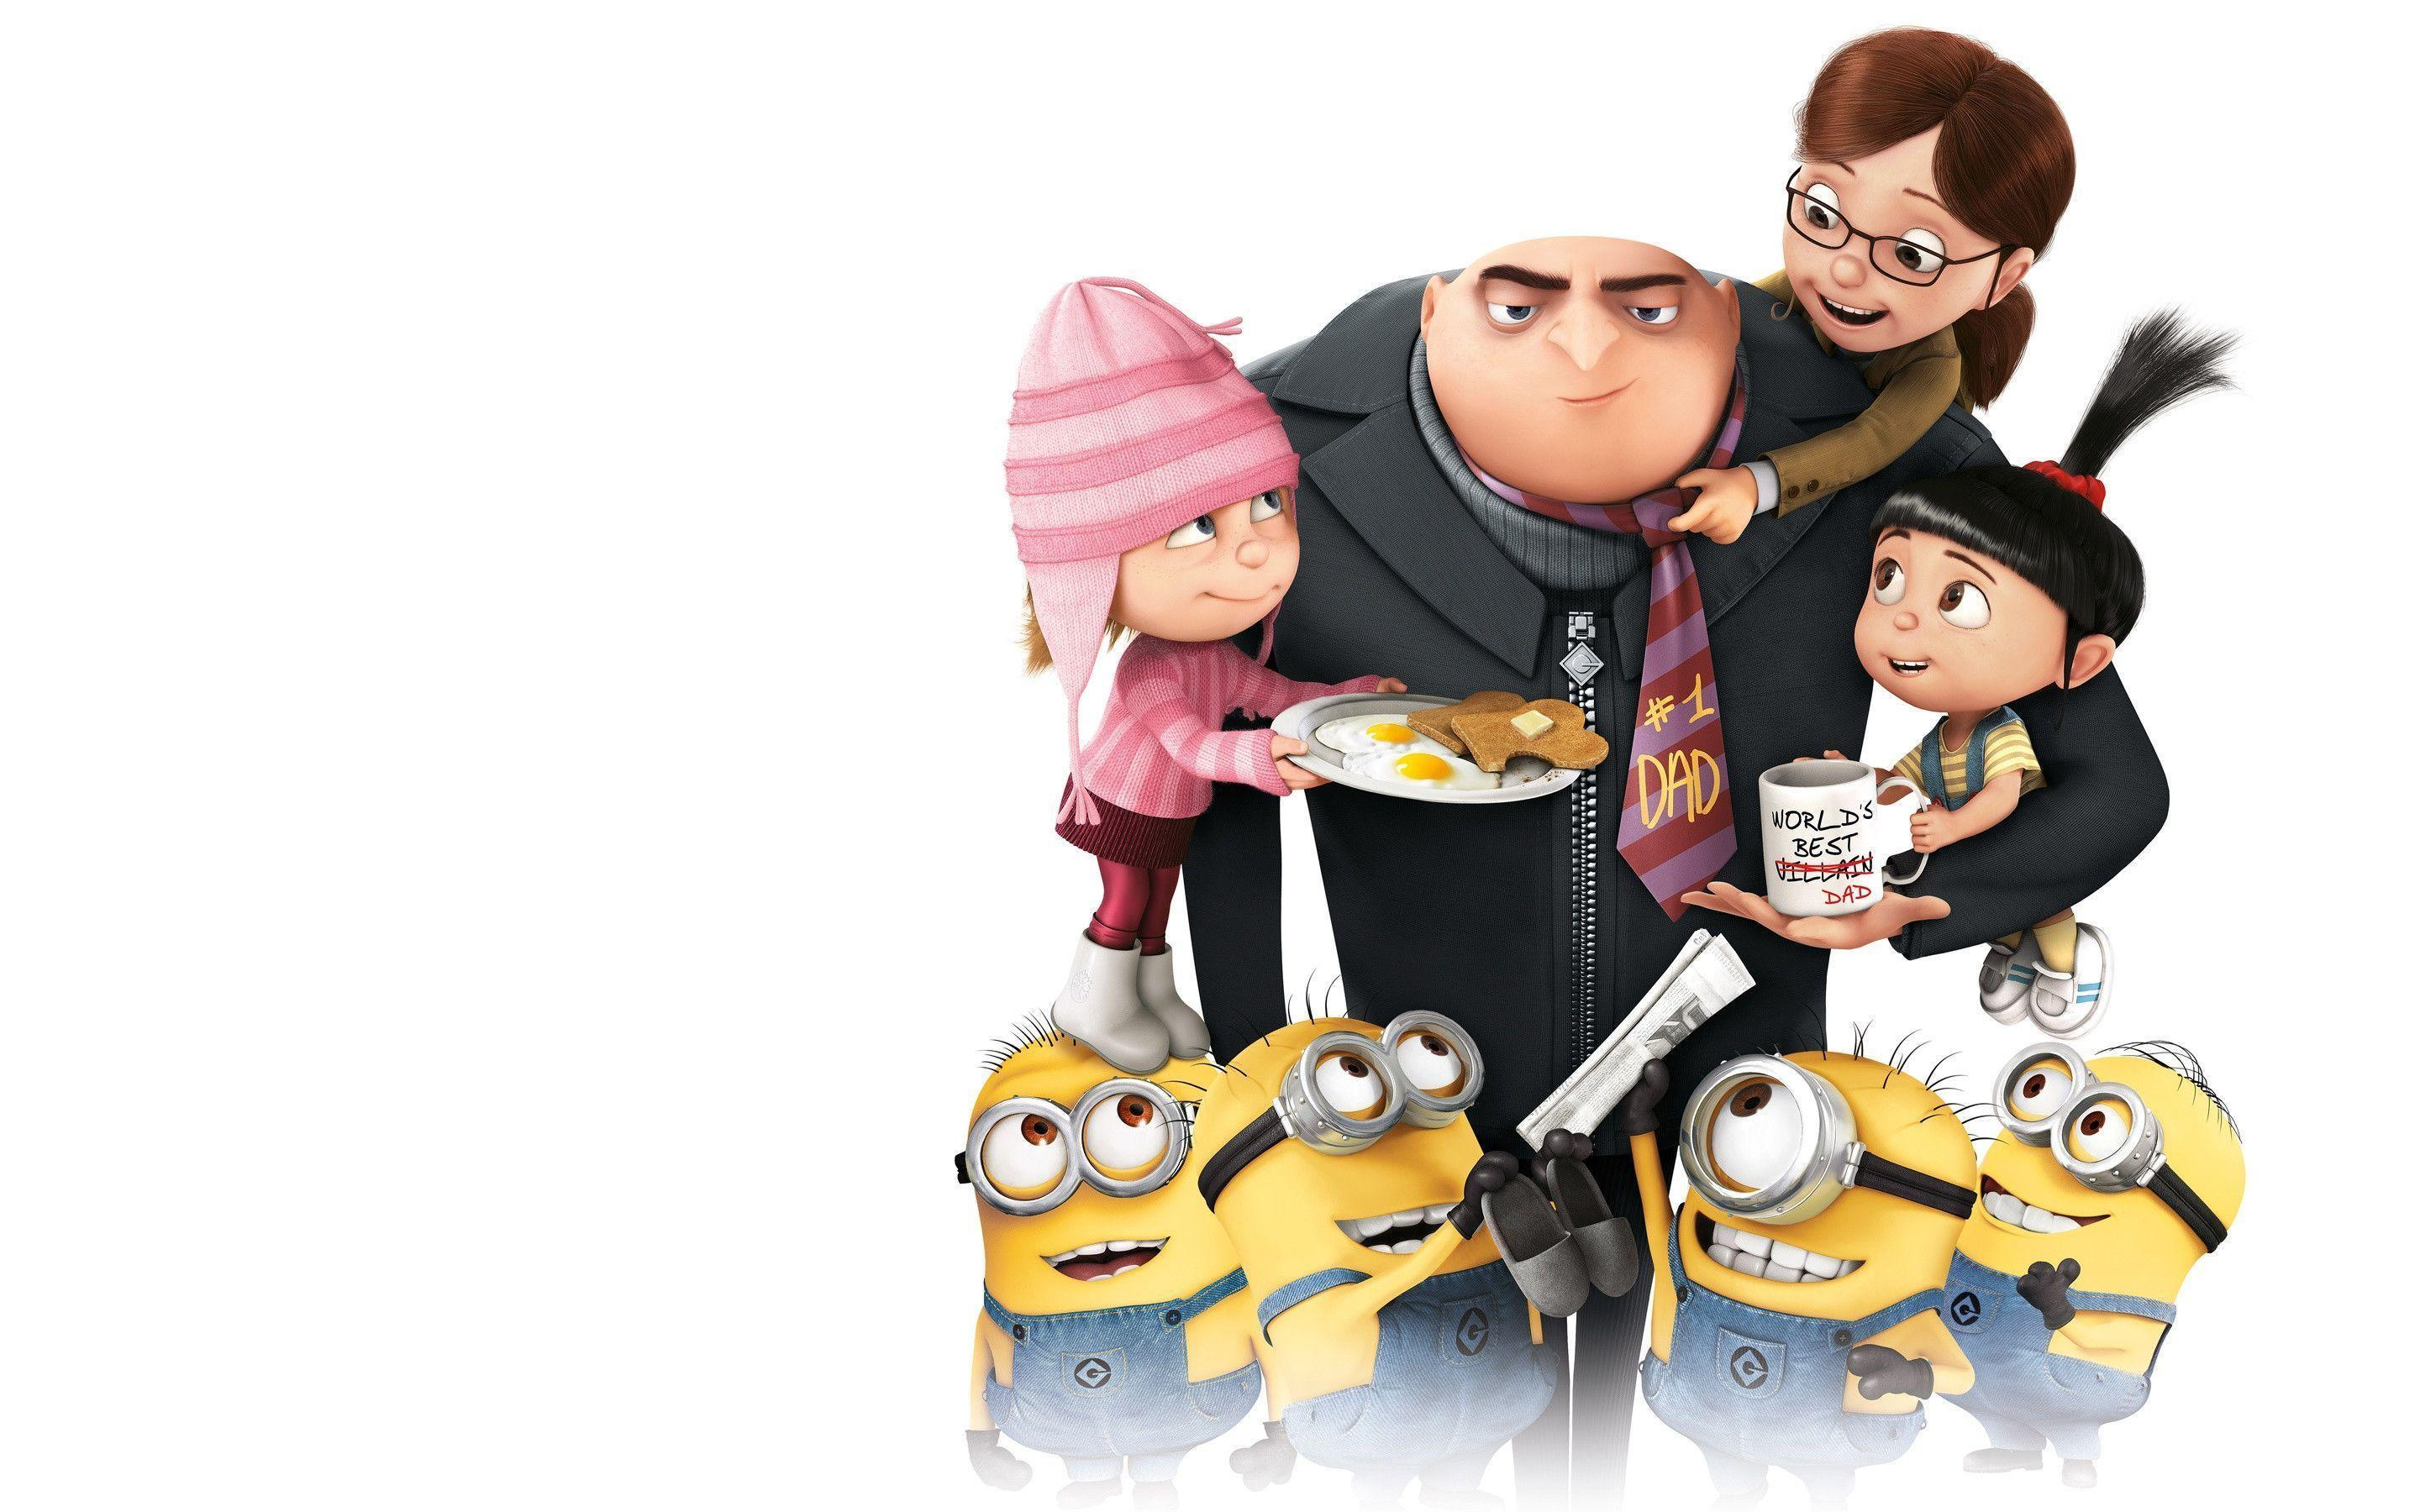 Minions Despicable Me Wallpapers - Wallpaper Cave